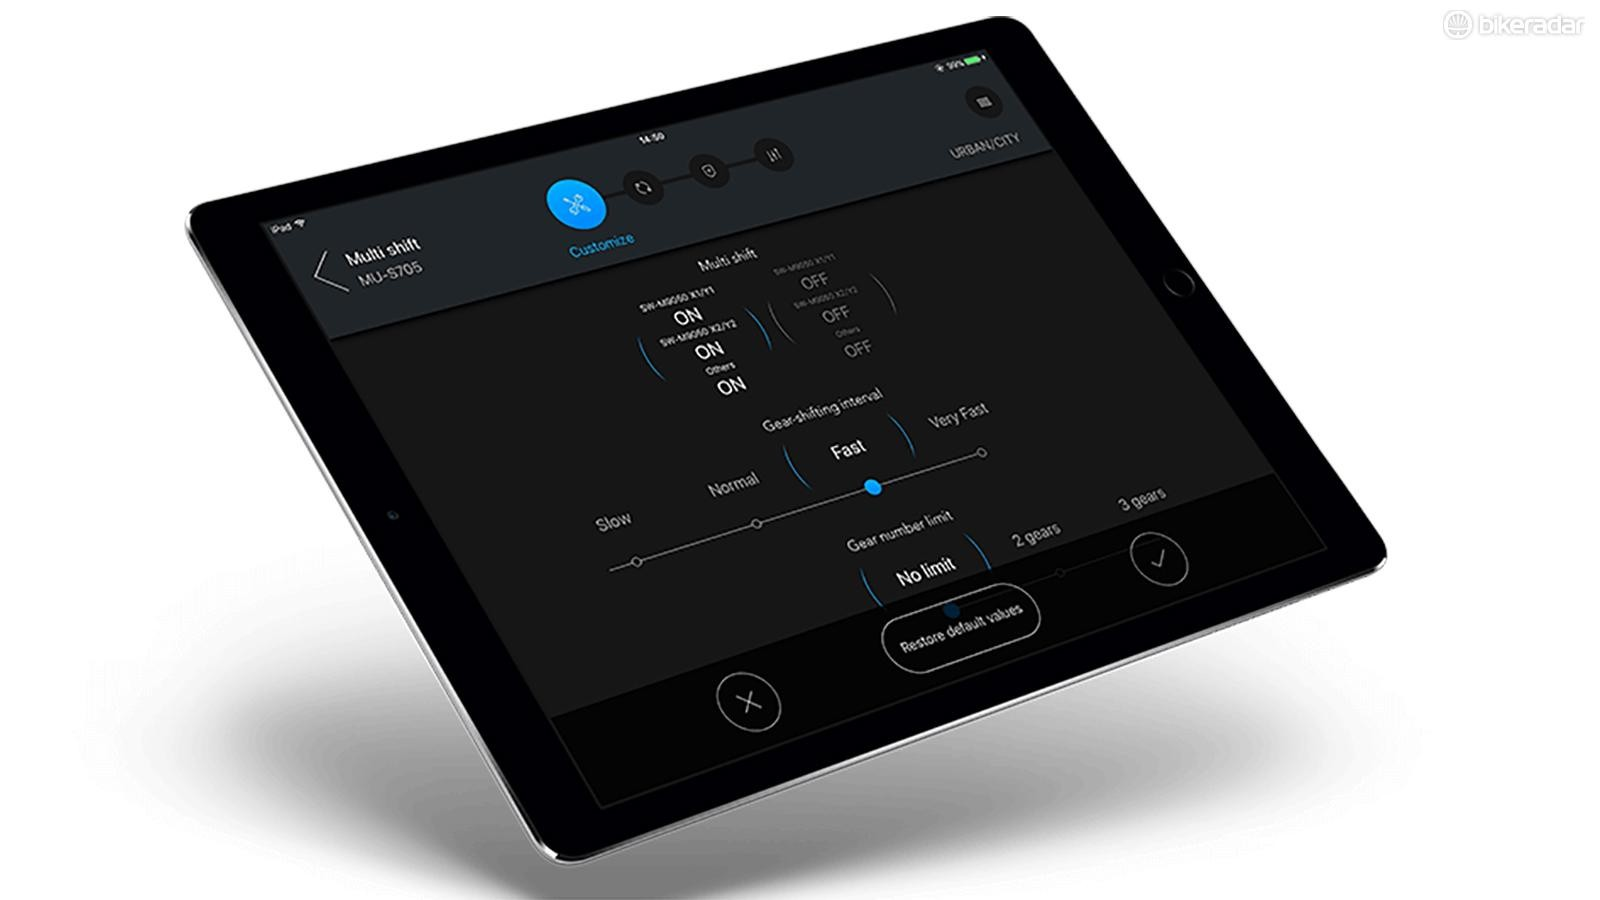 Riders can now make adjustments and firmware updates via an iPad app